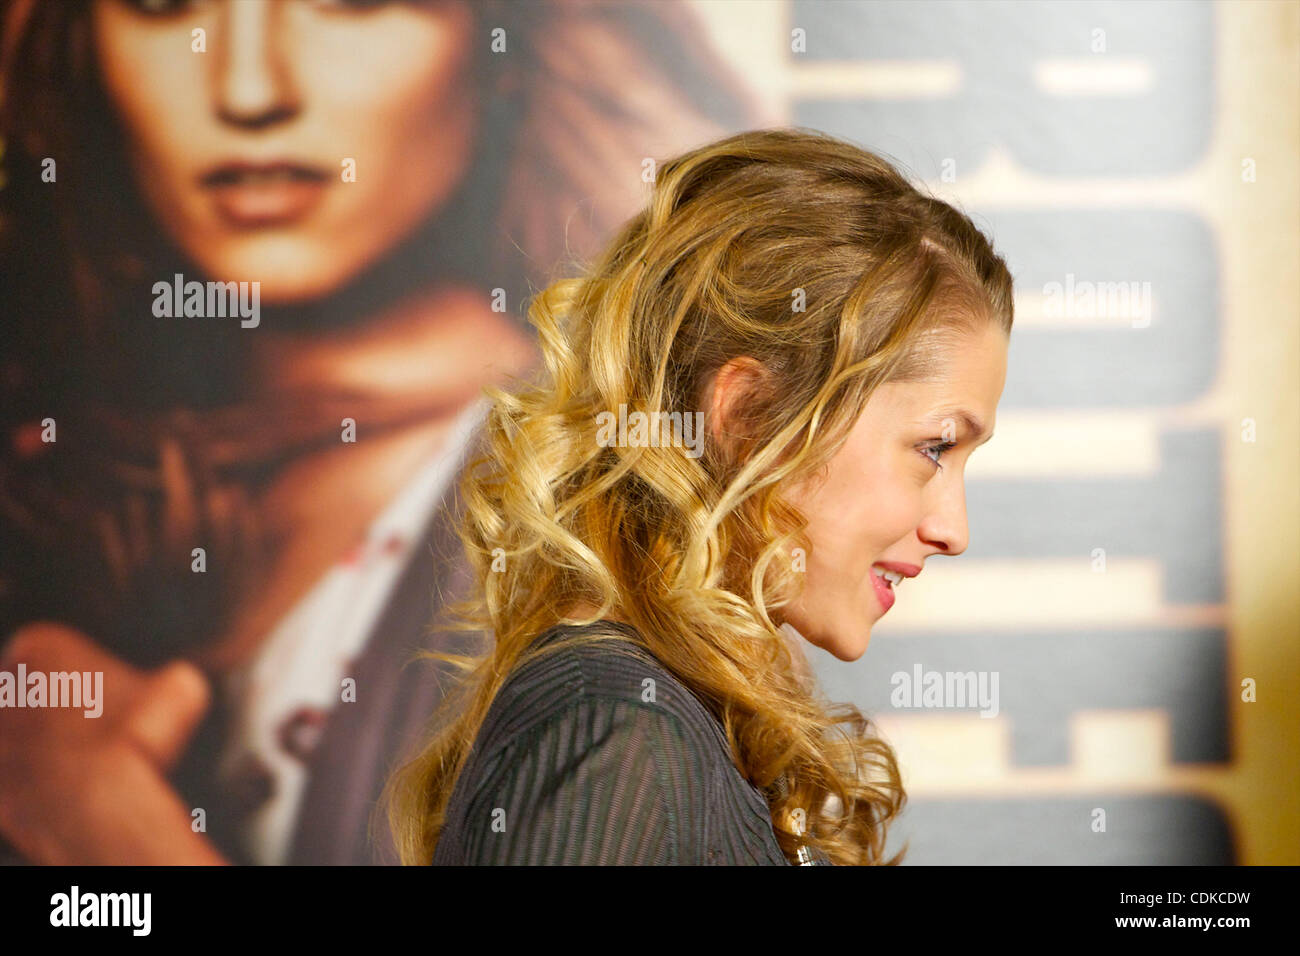 Actress Teresa Palmer attends the Madrid Photocall of 'I Am